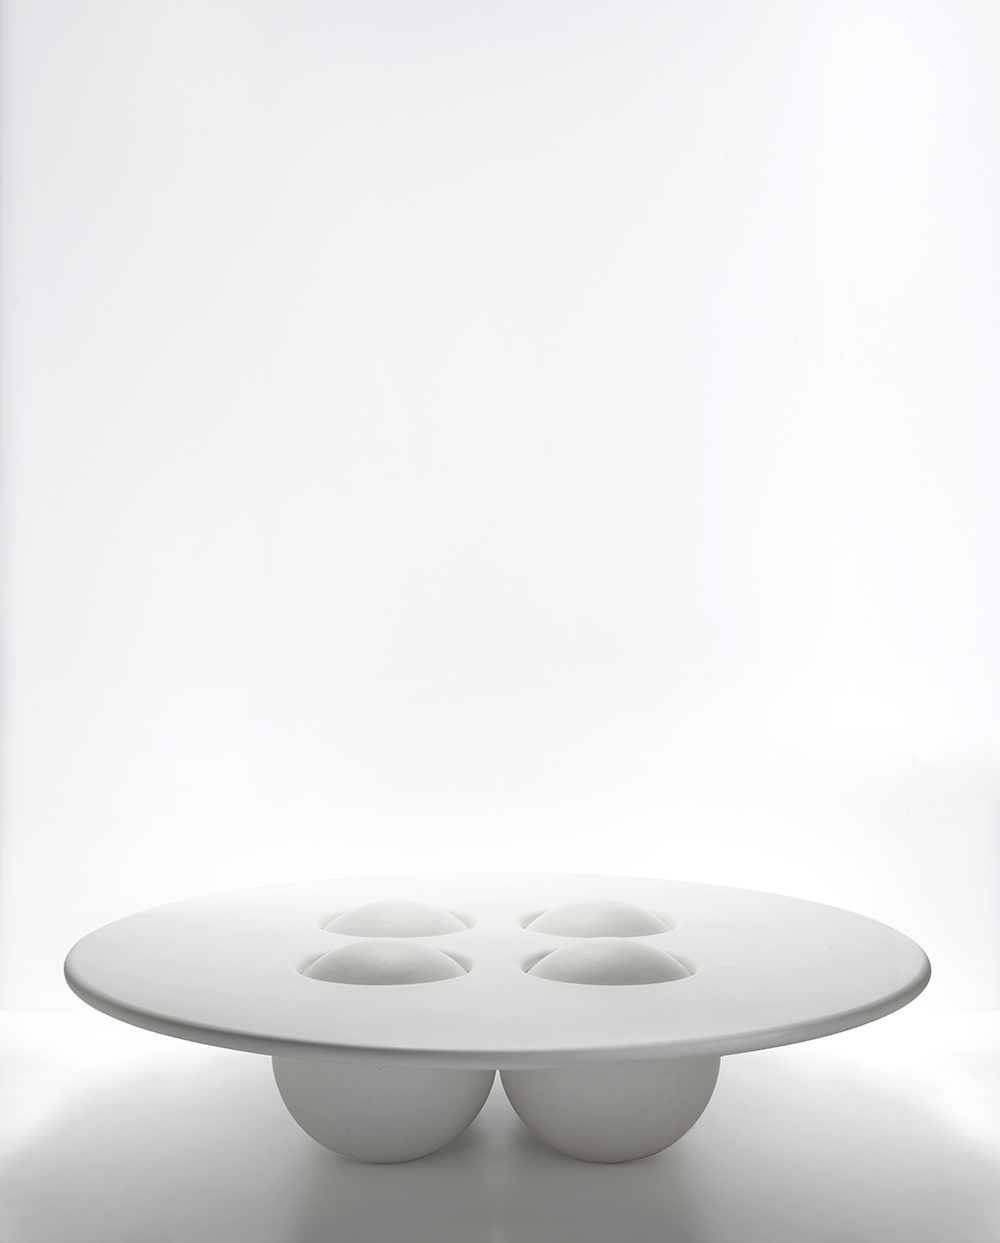 Brooksbank & Collins_The Kubrick Table_2_1000pix